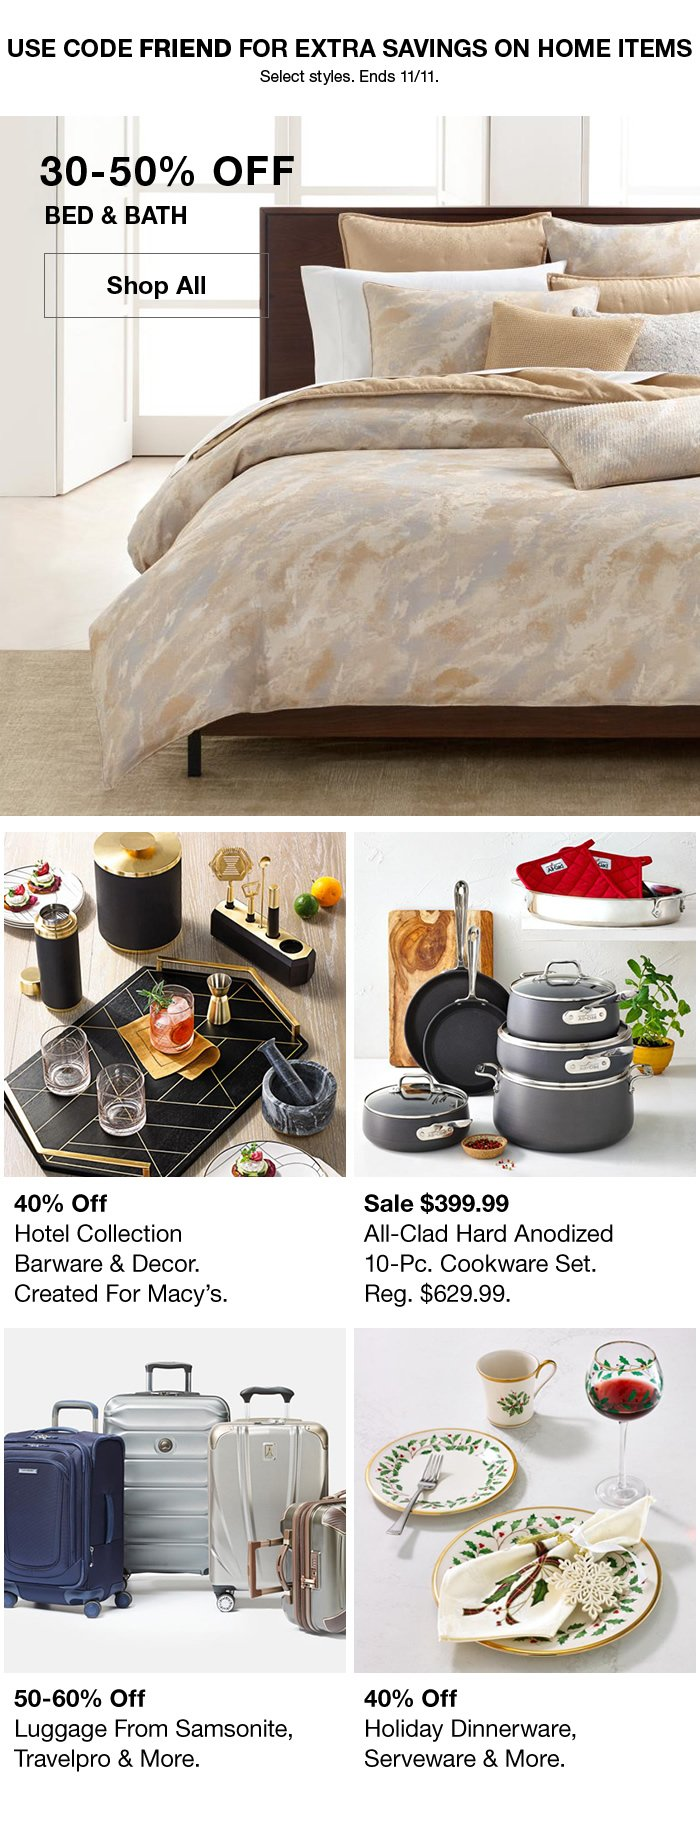 Use Code FRIEND For Extra Savings on Home Items, 30-50 percent off, Bed and Bath, Shop All, 40 percent off, Hotel Collection Barware and Decor, Sale $399.99, All-Clad Hard Anodized 10-Piece Cookware Set, 50-60 percent off, Luggage From Samsonite,Travelpro and More, 40 percent off, Holiday Dinnerware